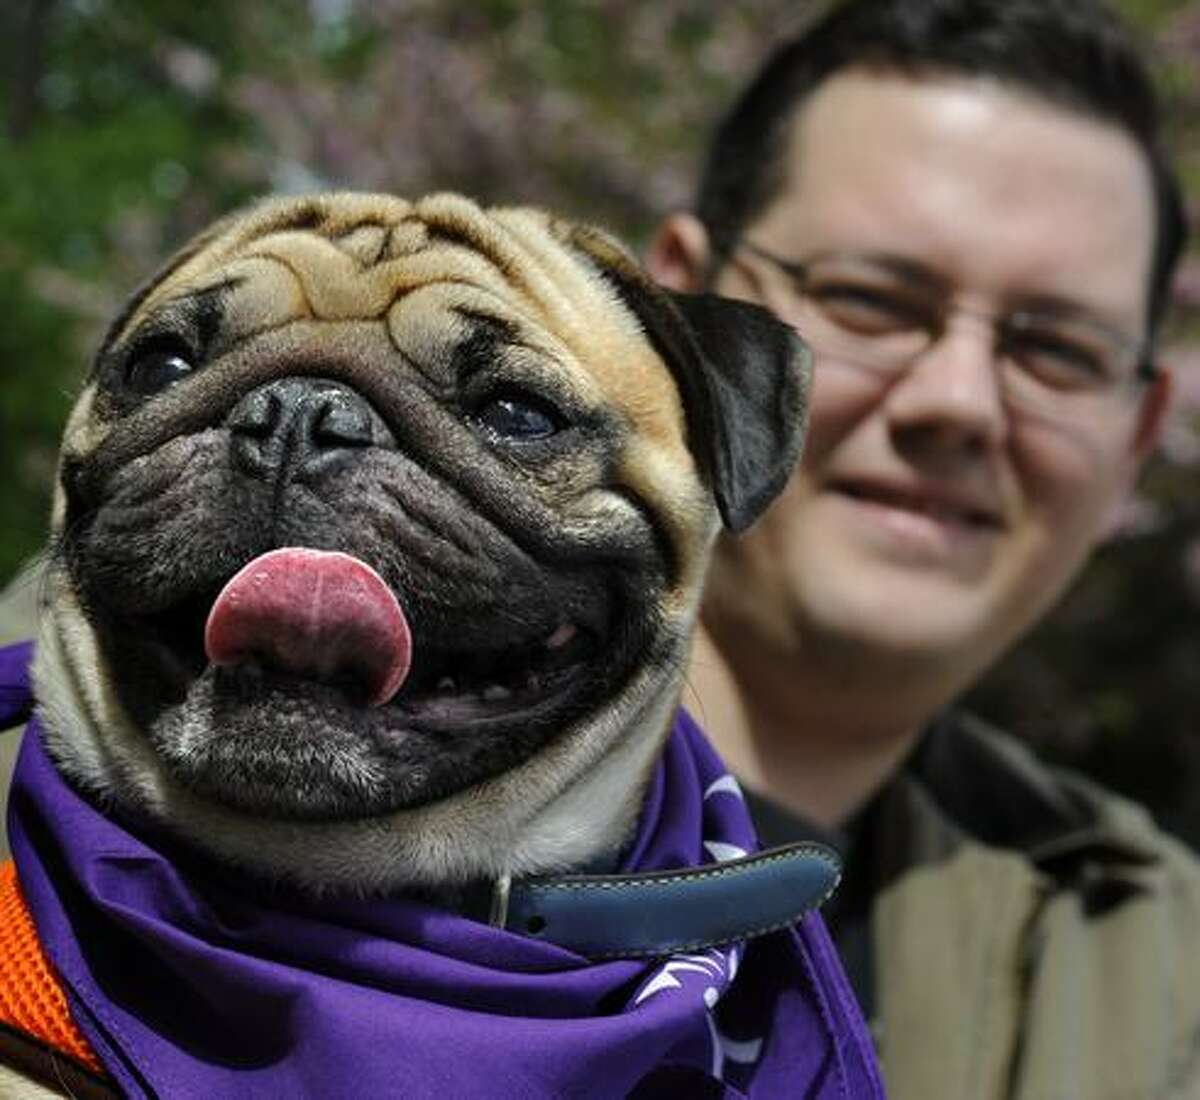 Rosco, a pug, with his owner, Steve Sweet, 29, from Perry Hall, Md. take part in the Maryland SPCA March for the Animals at Druid Hill Park on Sunday in Baltimore, Md. (AP Photo/The Baltimore Sun, Algerina Perna )